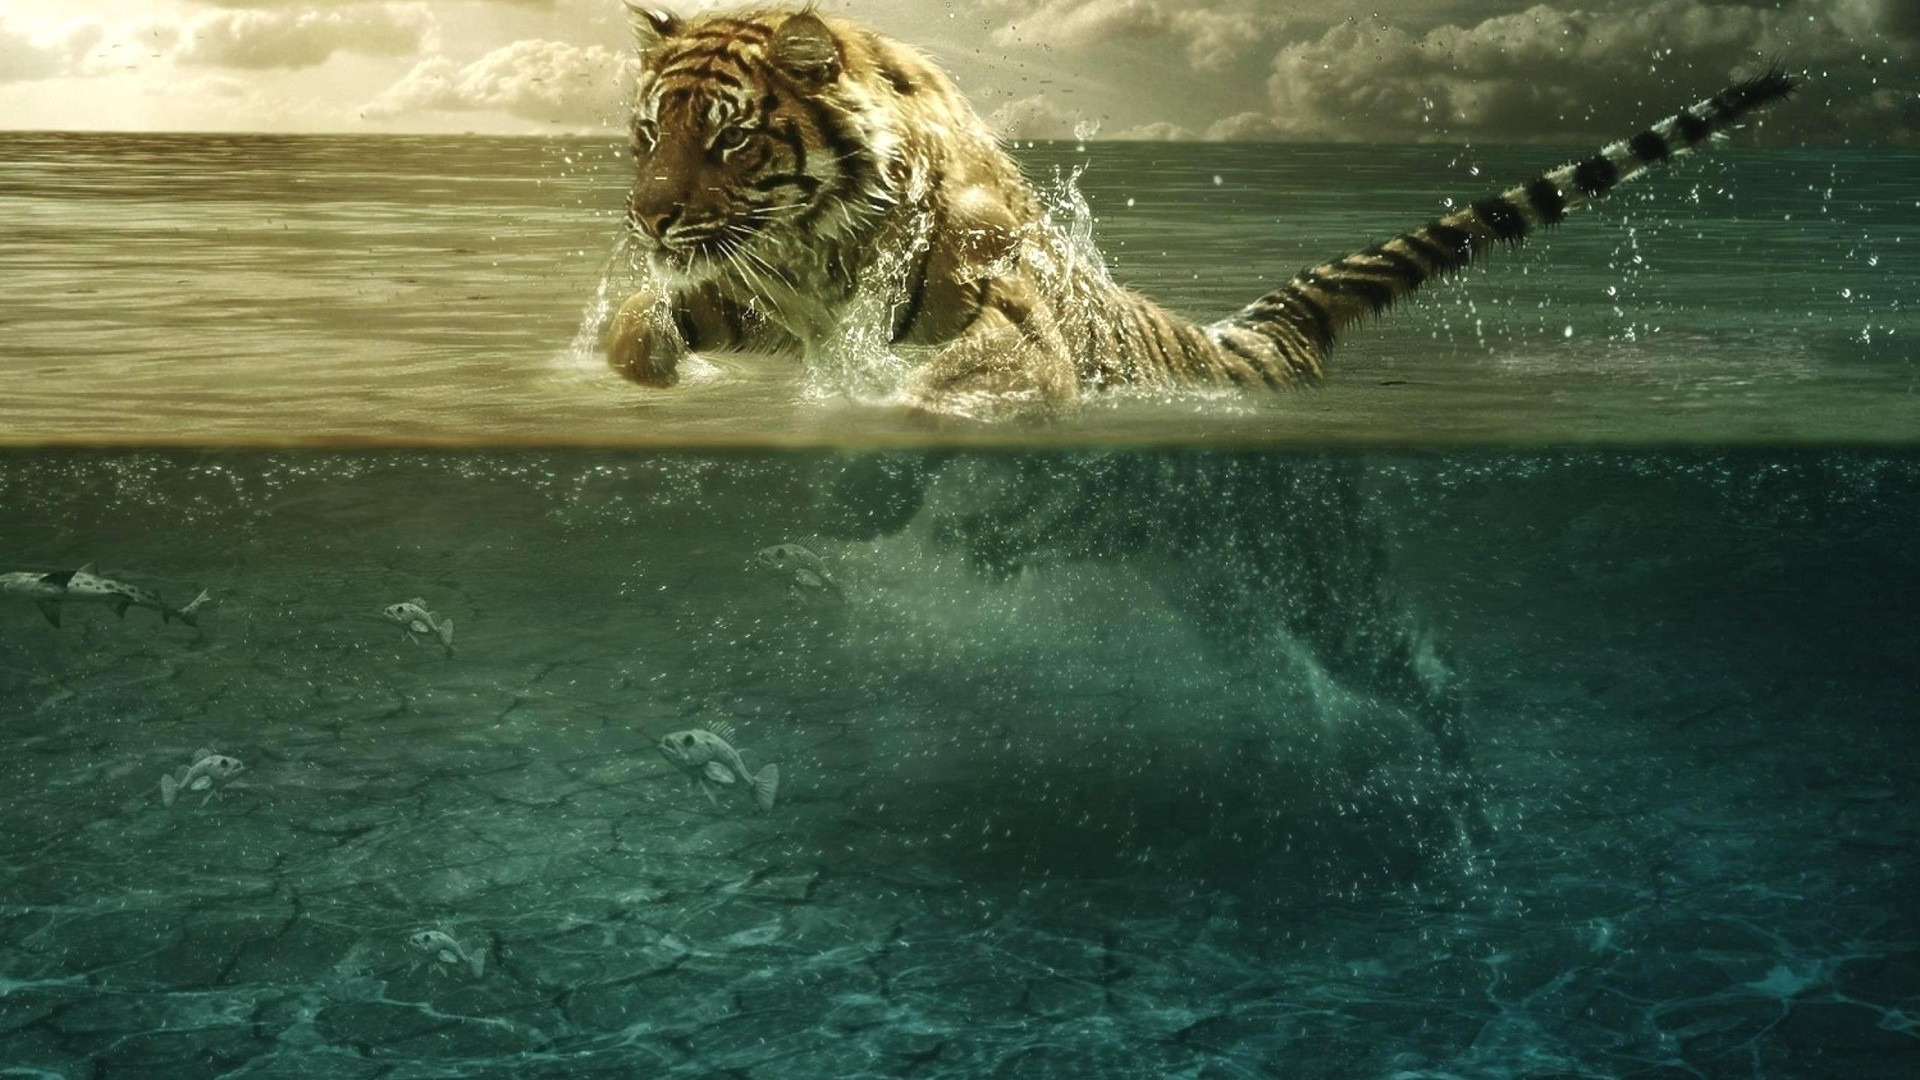 tigers wildlife water nature animal mammal wild outdoors portrait predator danger cat tiger big zoo swimming